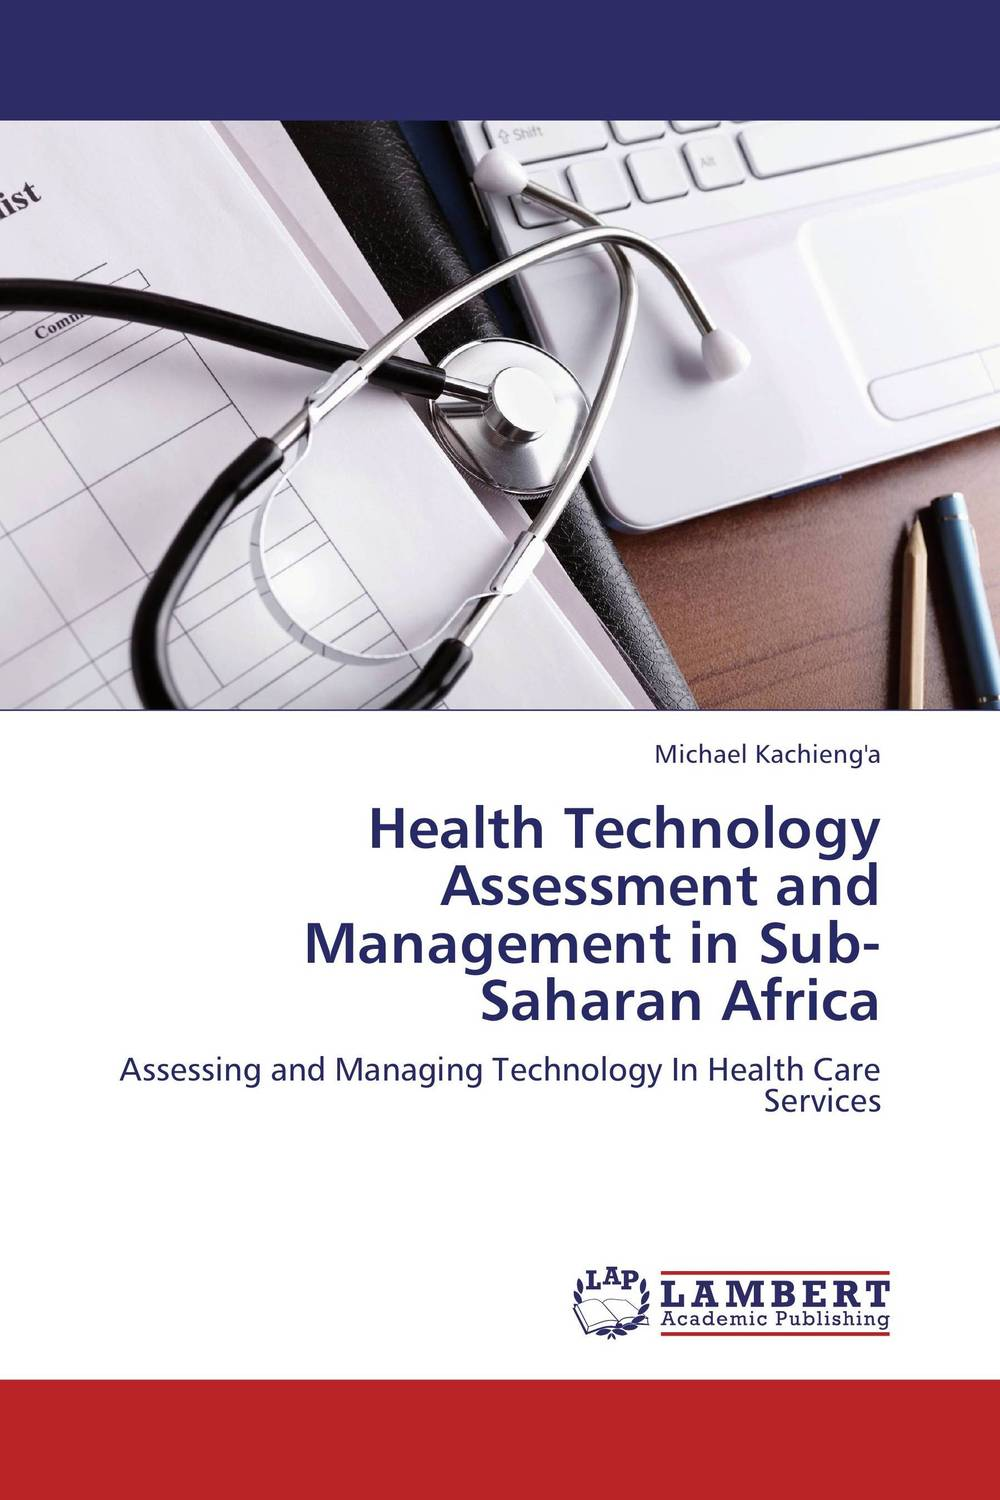 Health Technology Assessment and Management in Sub-Saharan Africa optimal and efficient motion planning of redundant robot manipulators